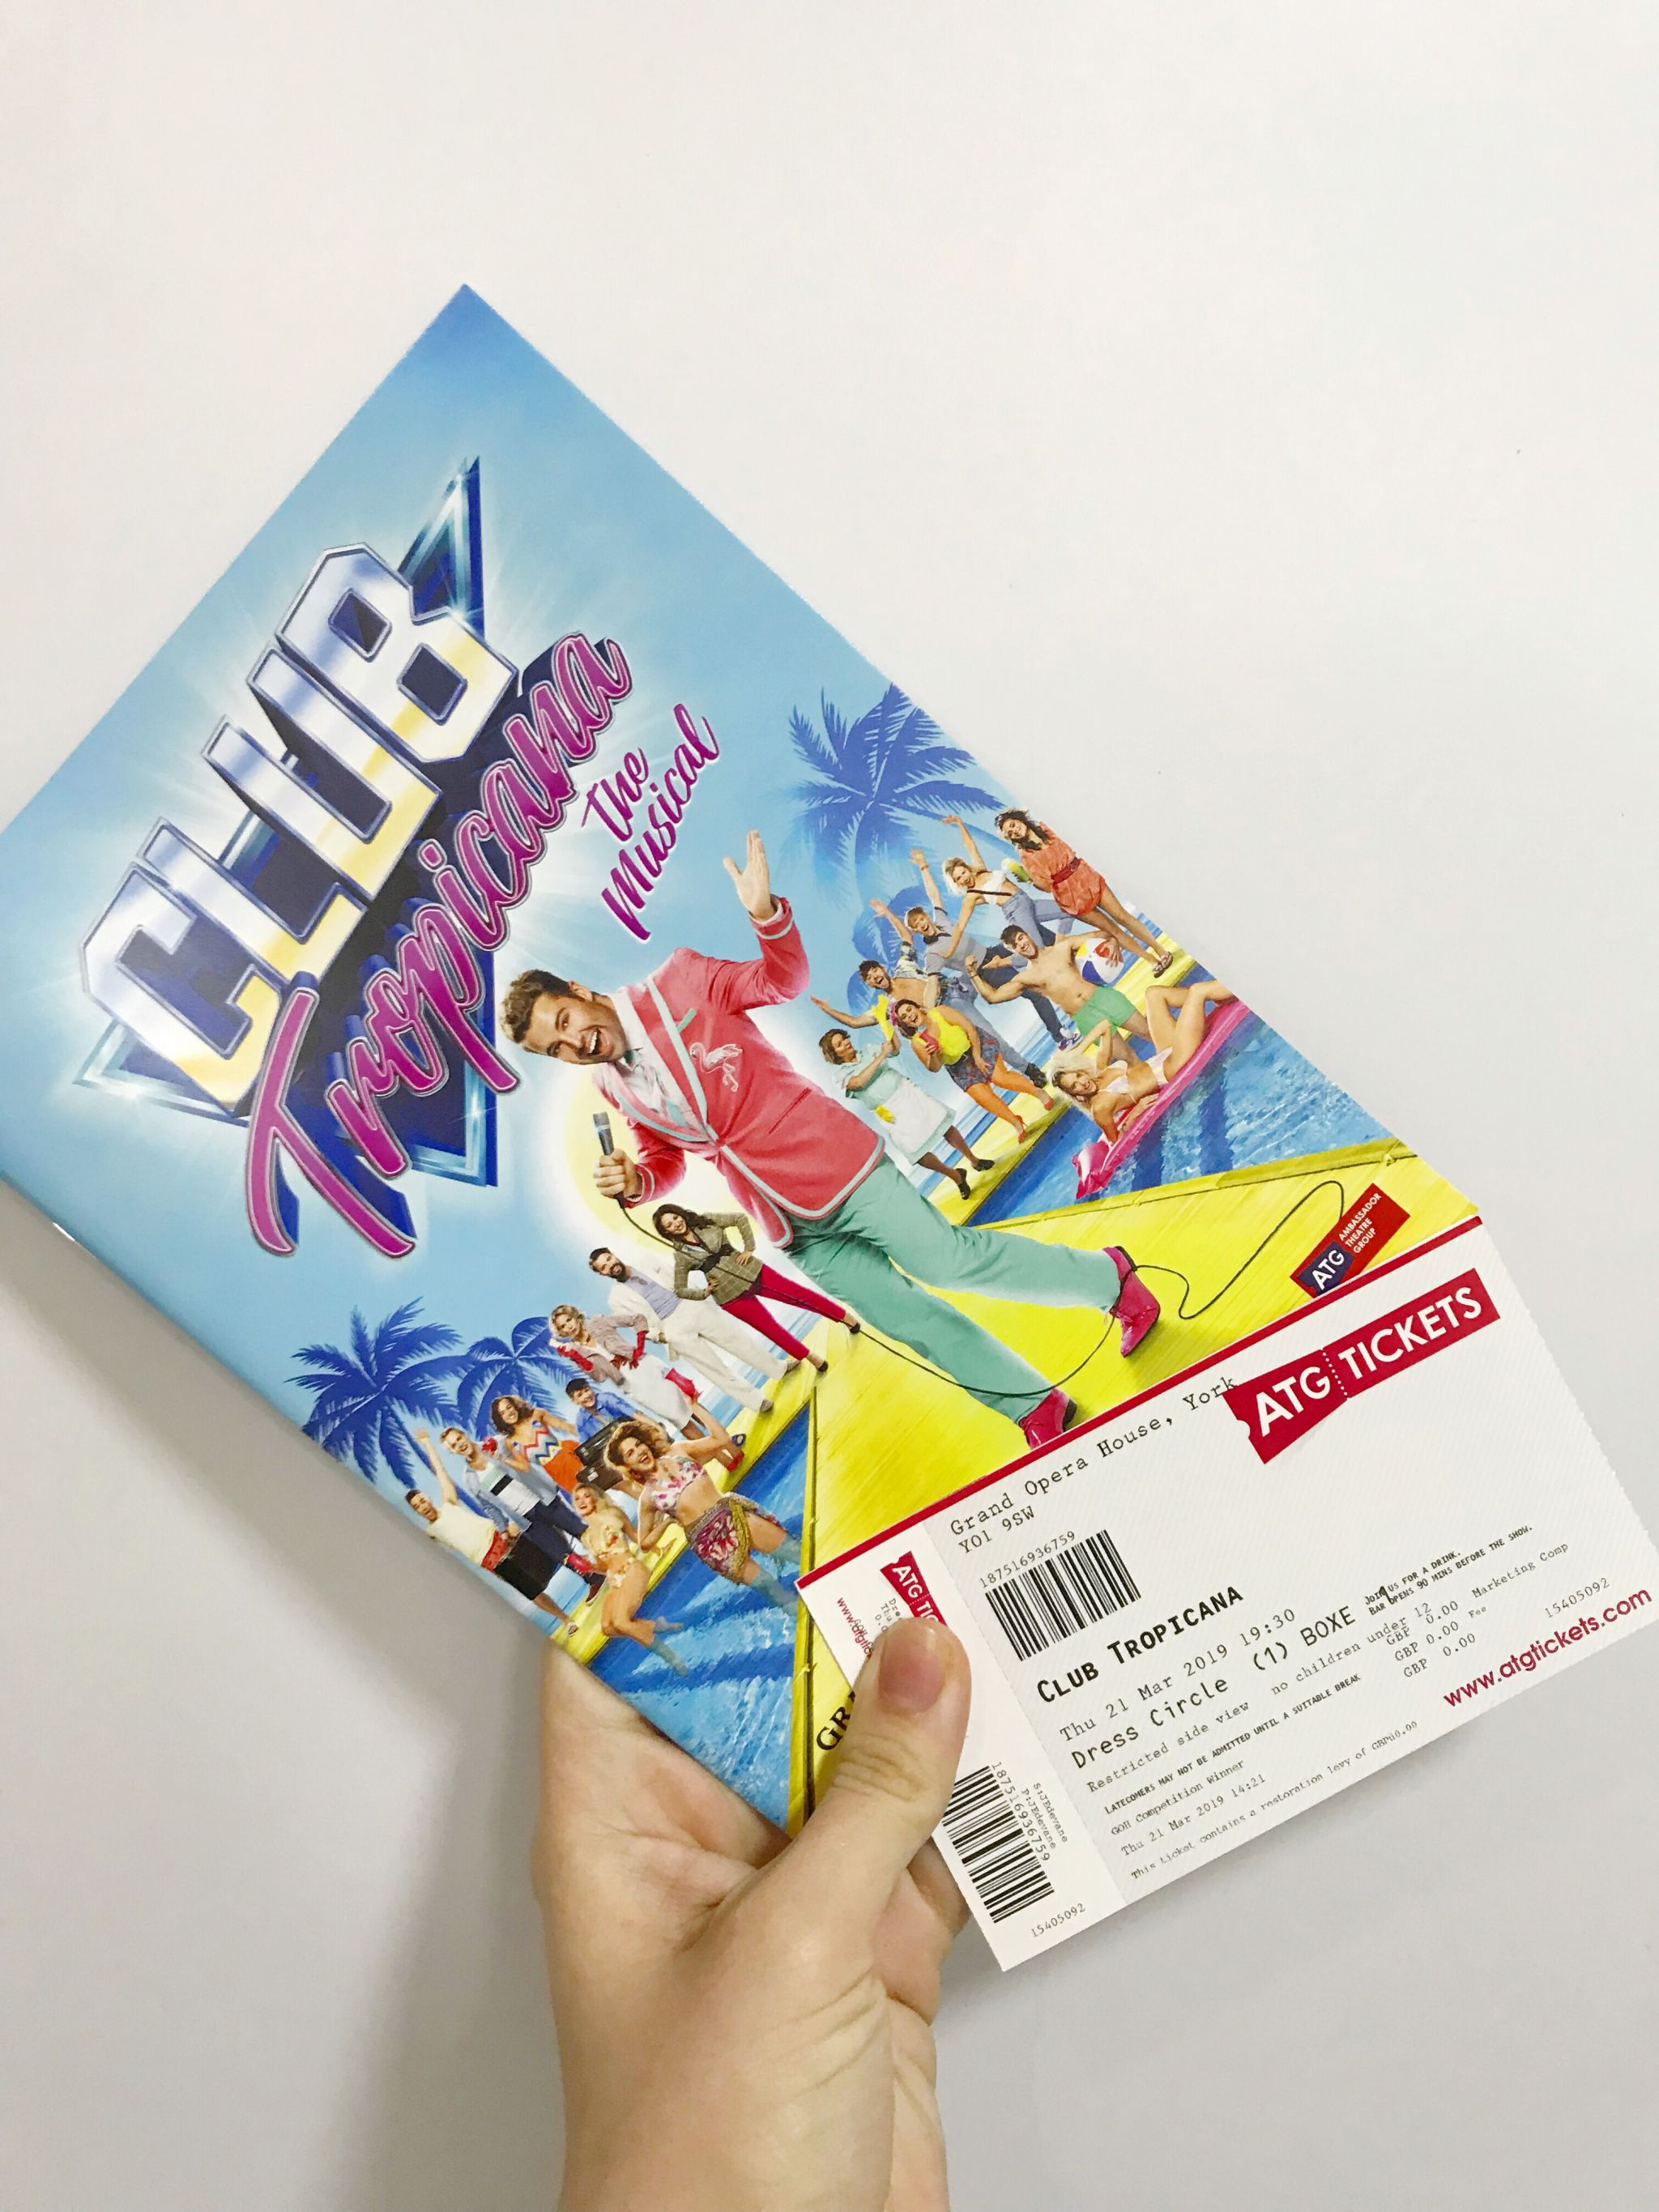 Club Tropicana The Musical programme and tickets